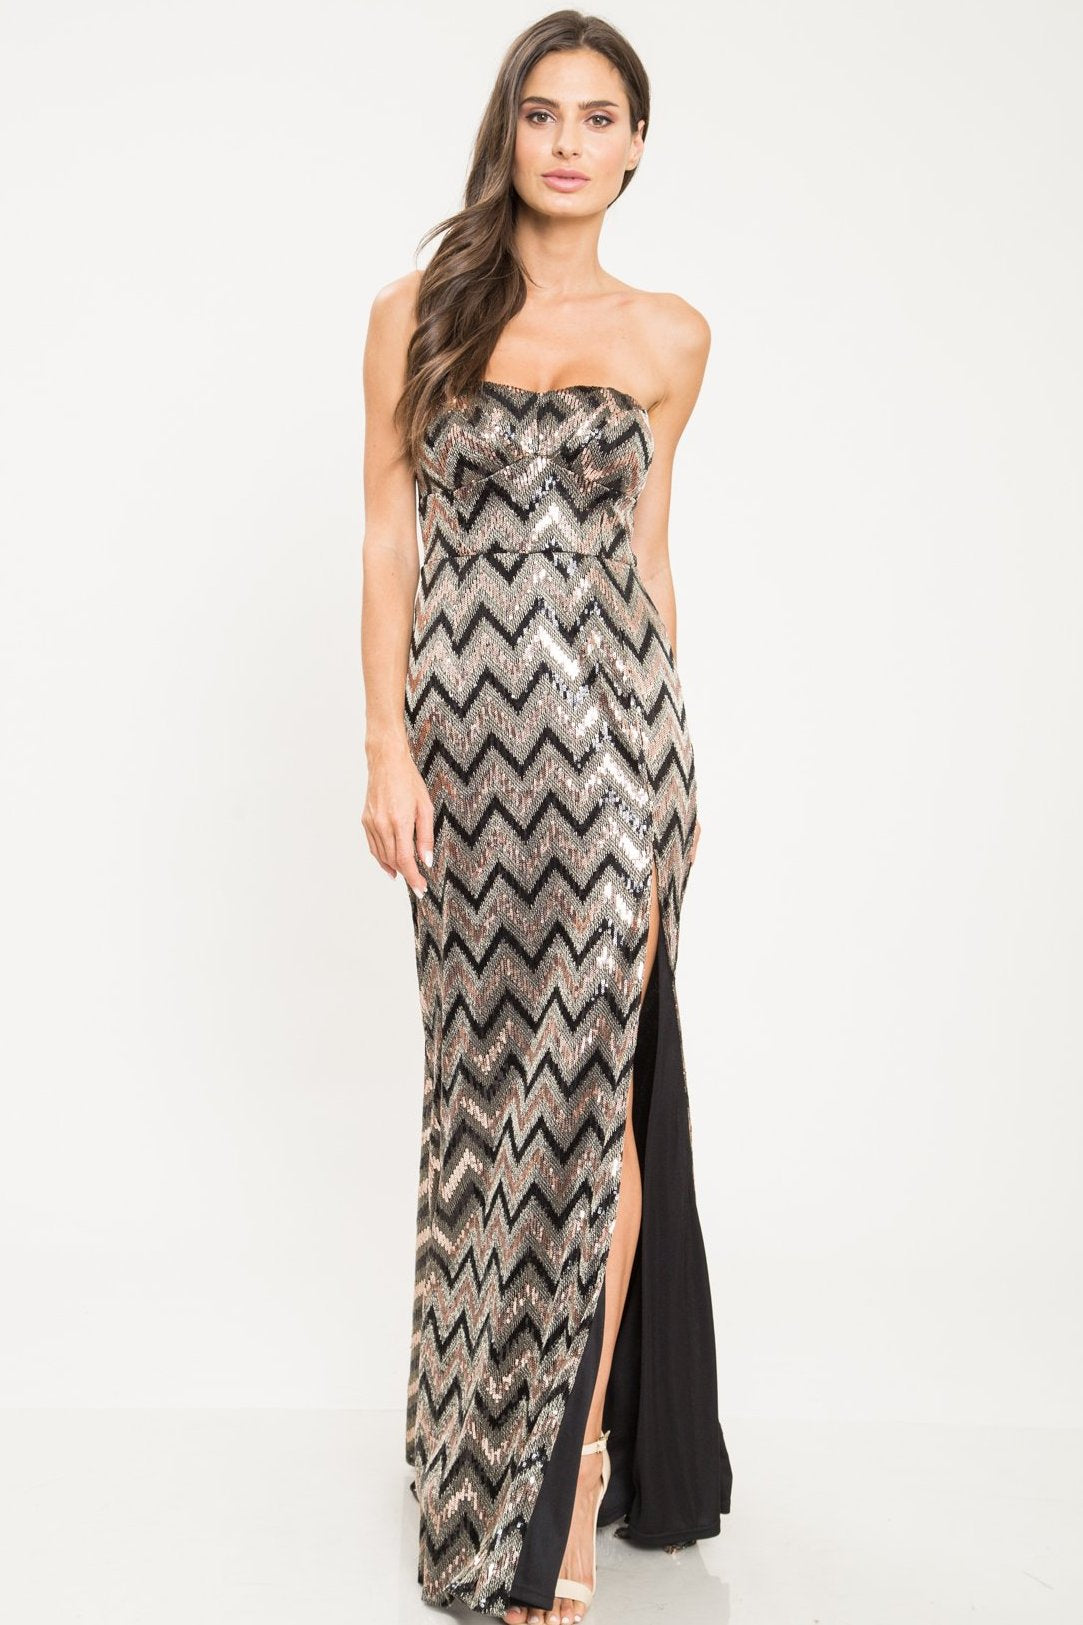 Heather Strapless Sequin Column Gown - Geegeebae